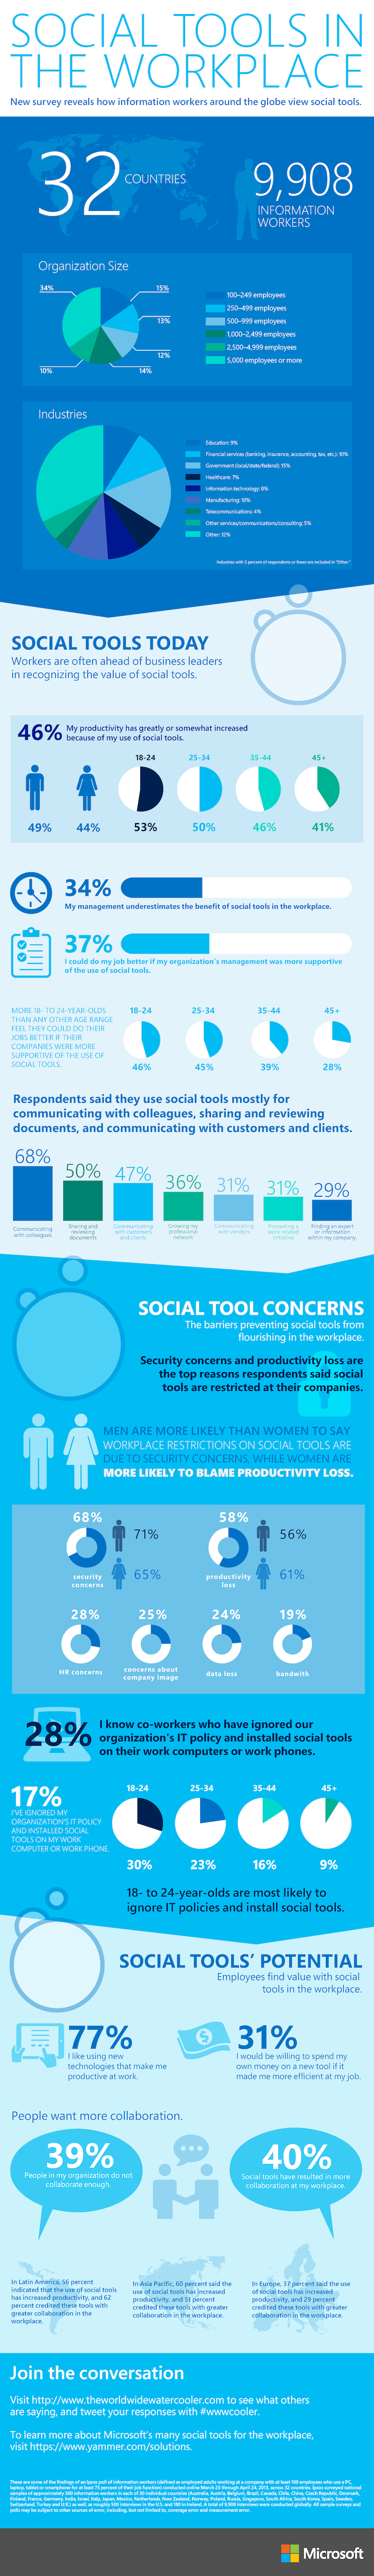 Women Use More of Social Tools in the Workplace [Infographic]